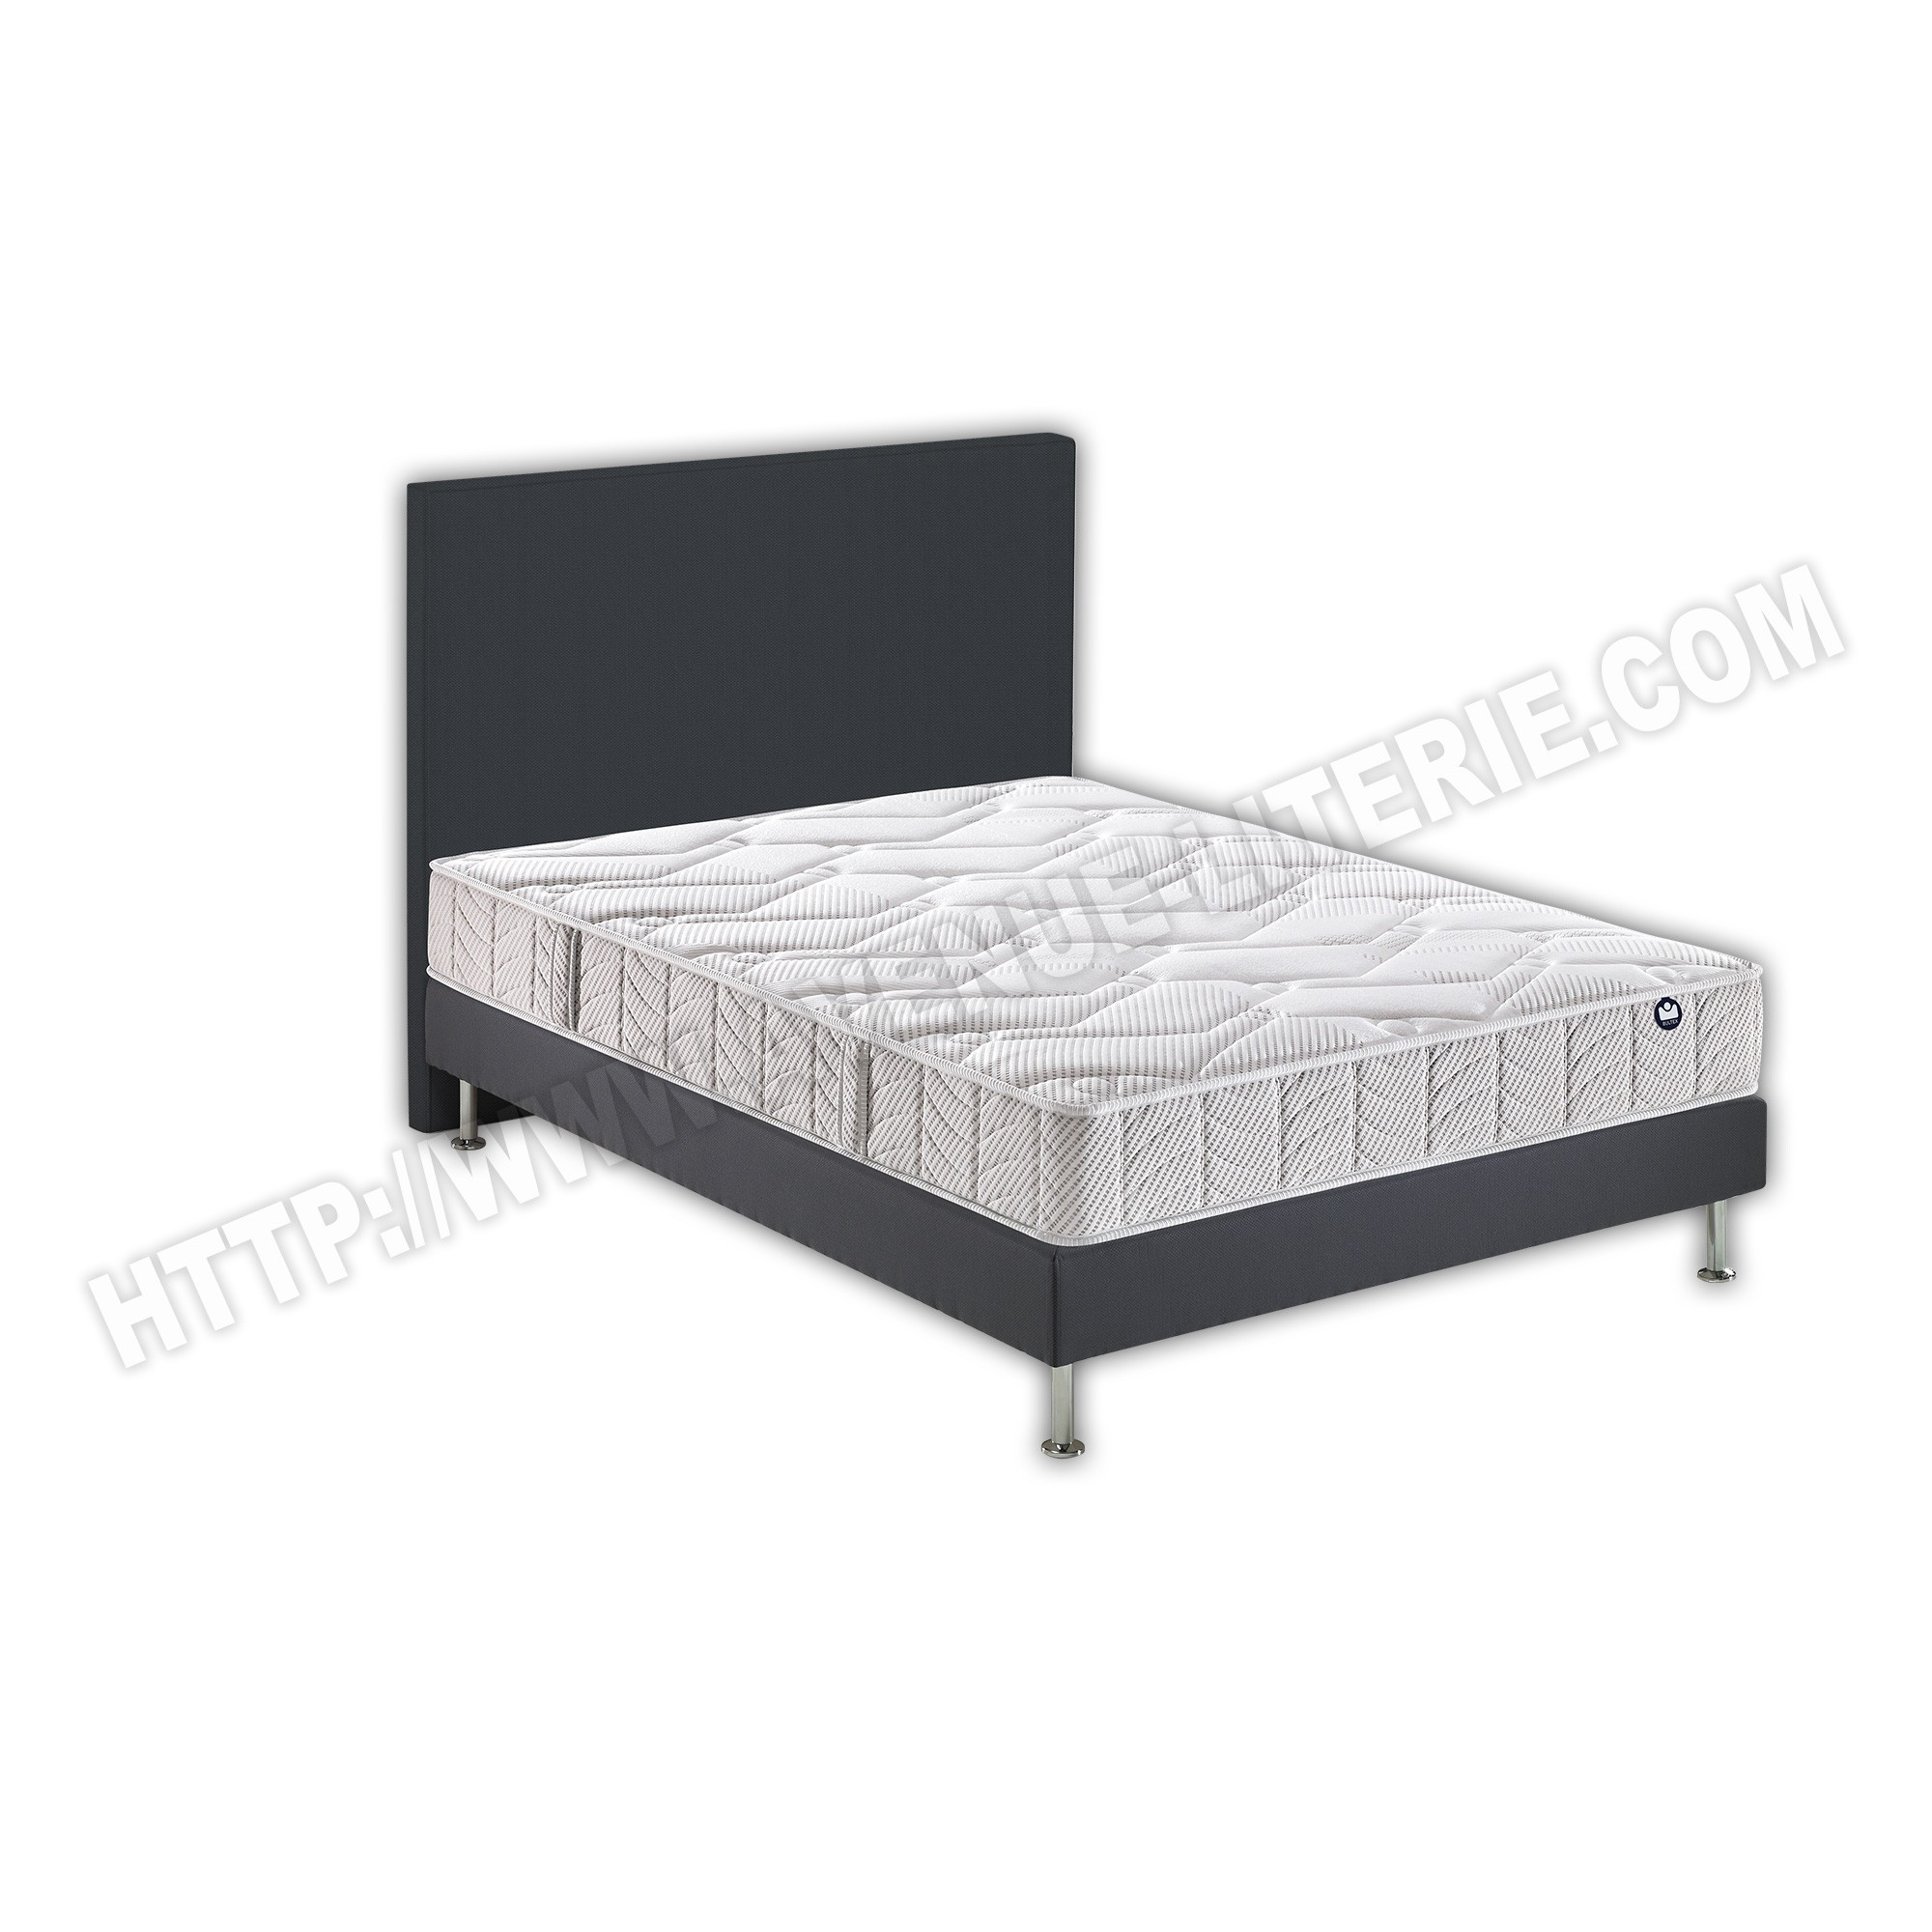 sommier merinos 140x190 excellent matelas merinos story. Black Bedroom Furniture Sets. Home Design Ideas